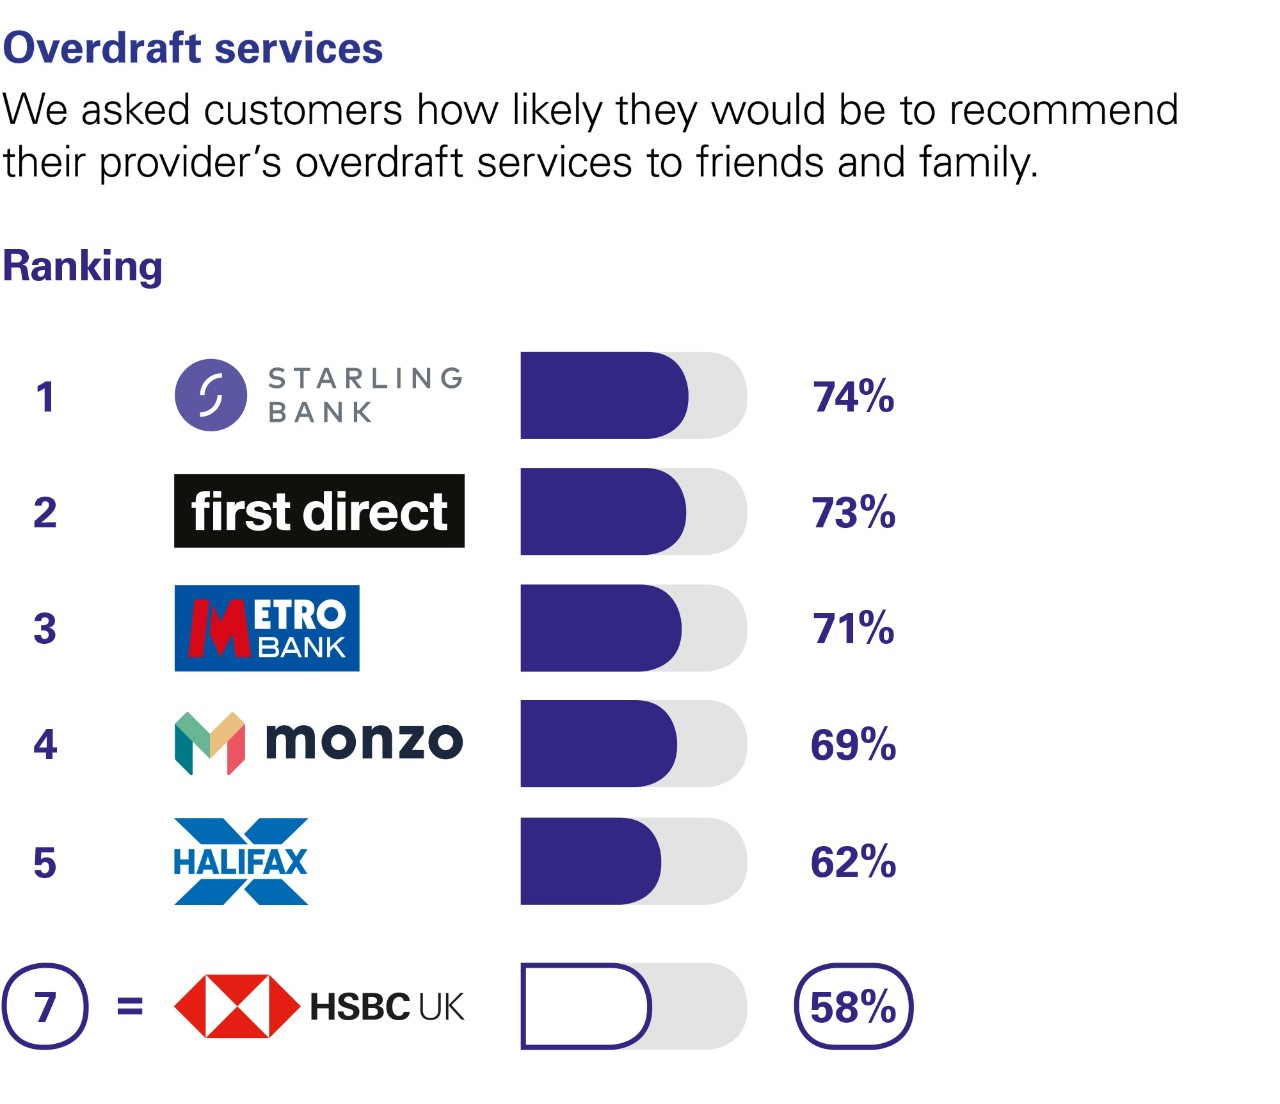 Overdraft services. We asked customers how likely they would be to recommend their provider's overdraft services to friends and family. Ranking: 1 Starling Bank  74%. 2 first direct 73%. 3 Metro Bank 71%. 4 Monzo 69%. 5 Halifax 62%.  7 HSBC UK 58%.